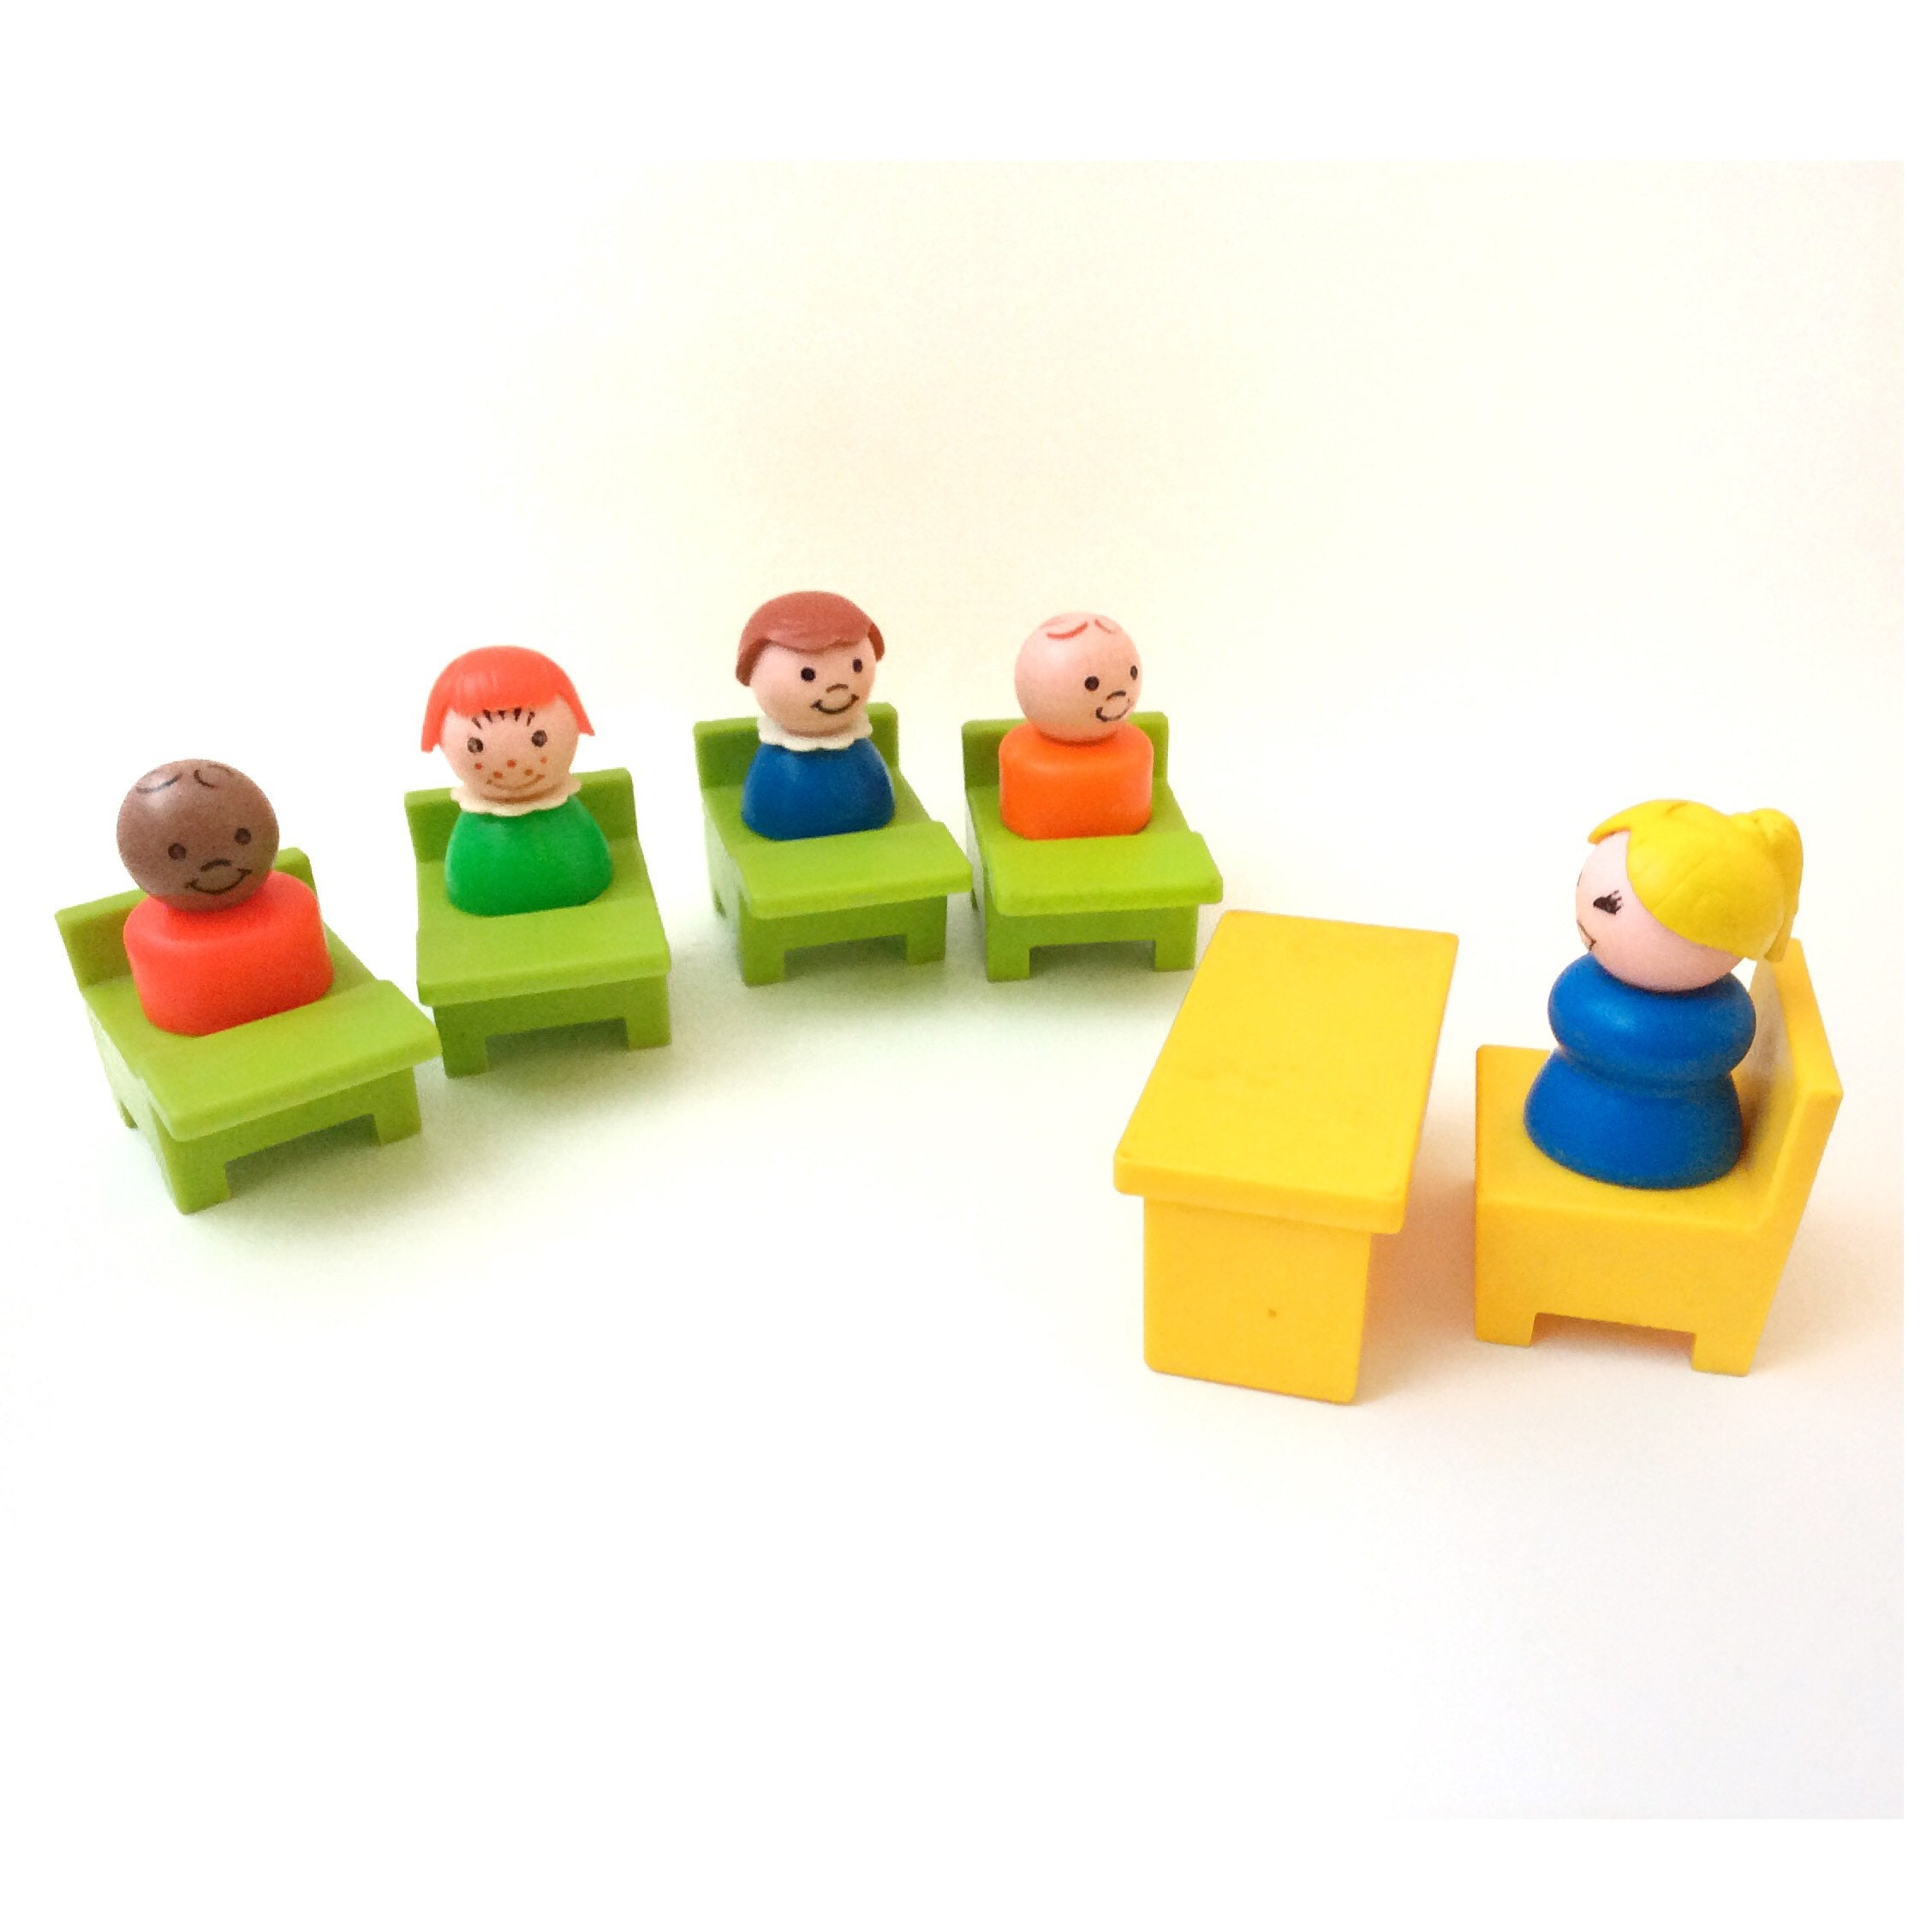 1971 Classic Iconic Fisher Price Little People School House Teachers and Children Made in Great Britain Retro Collectible Toy